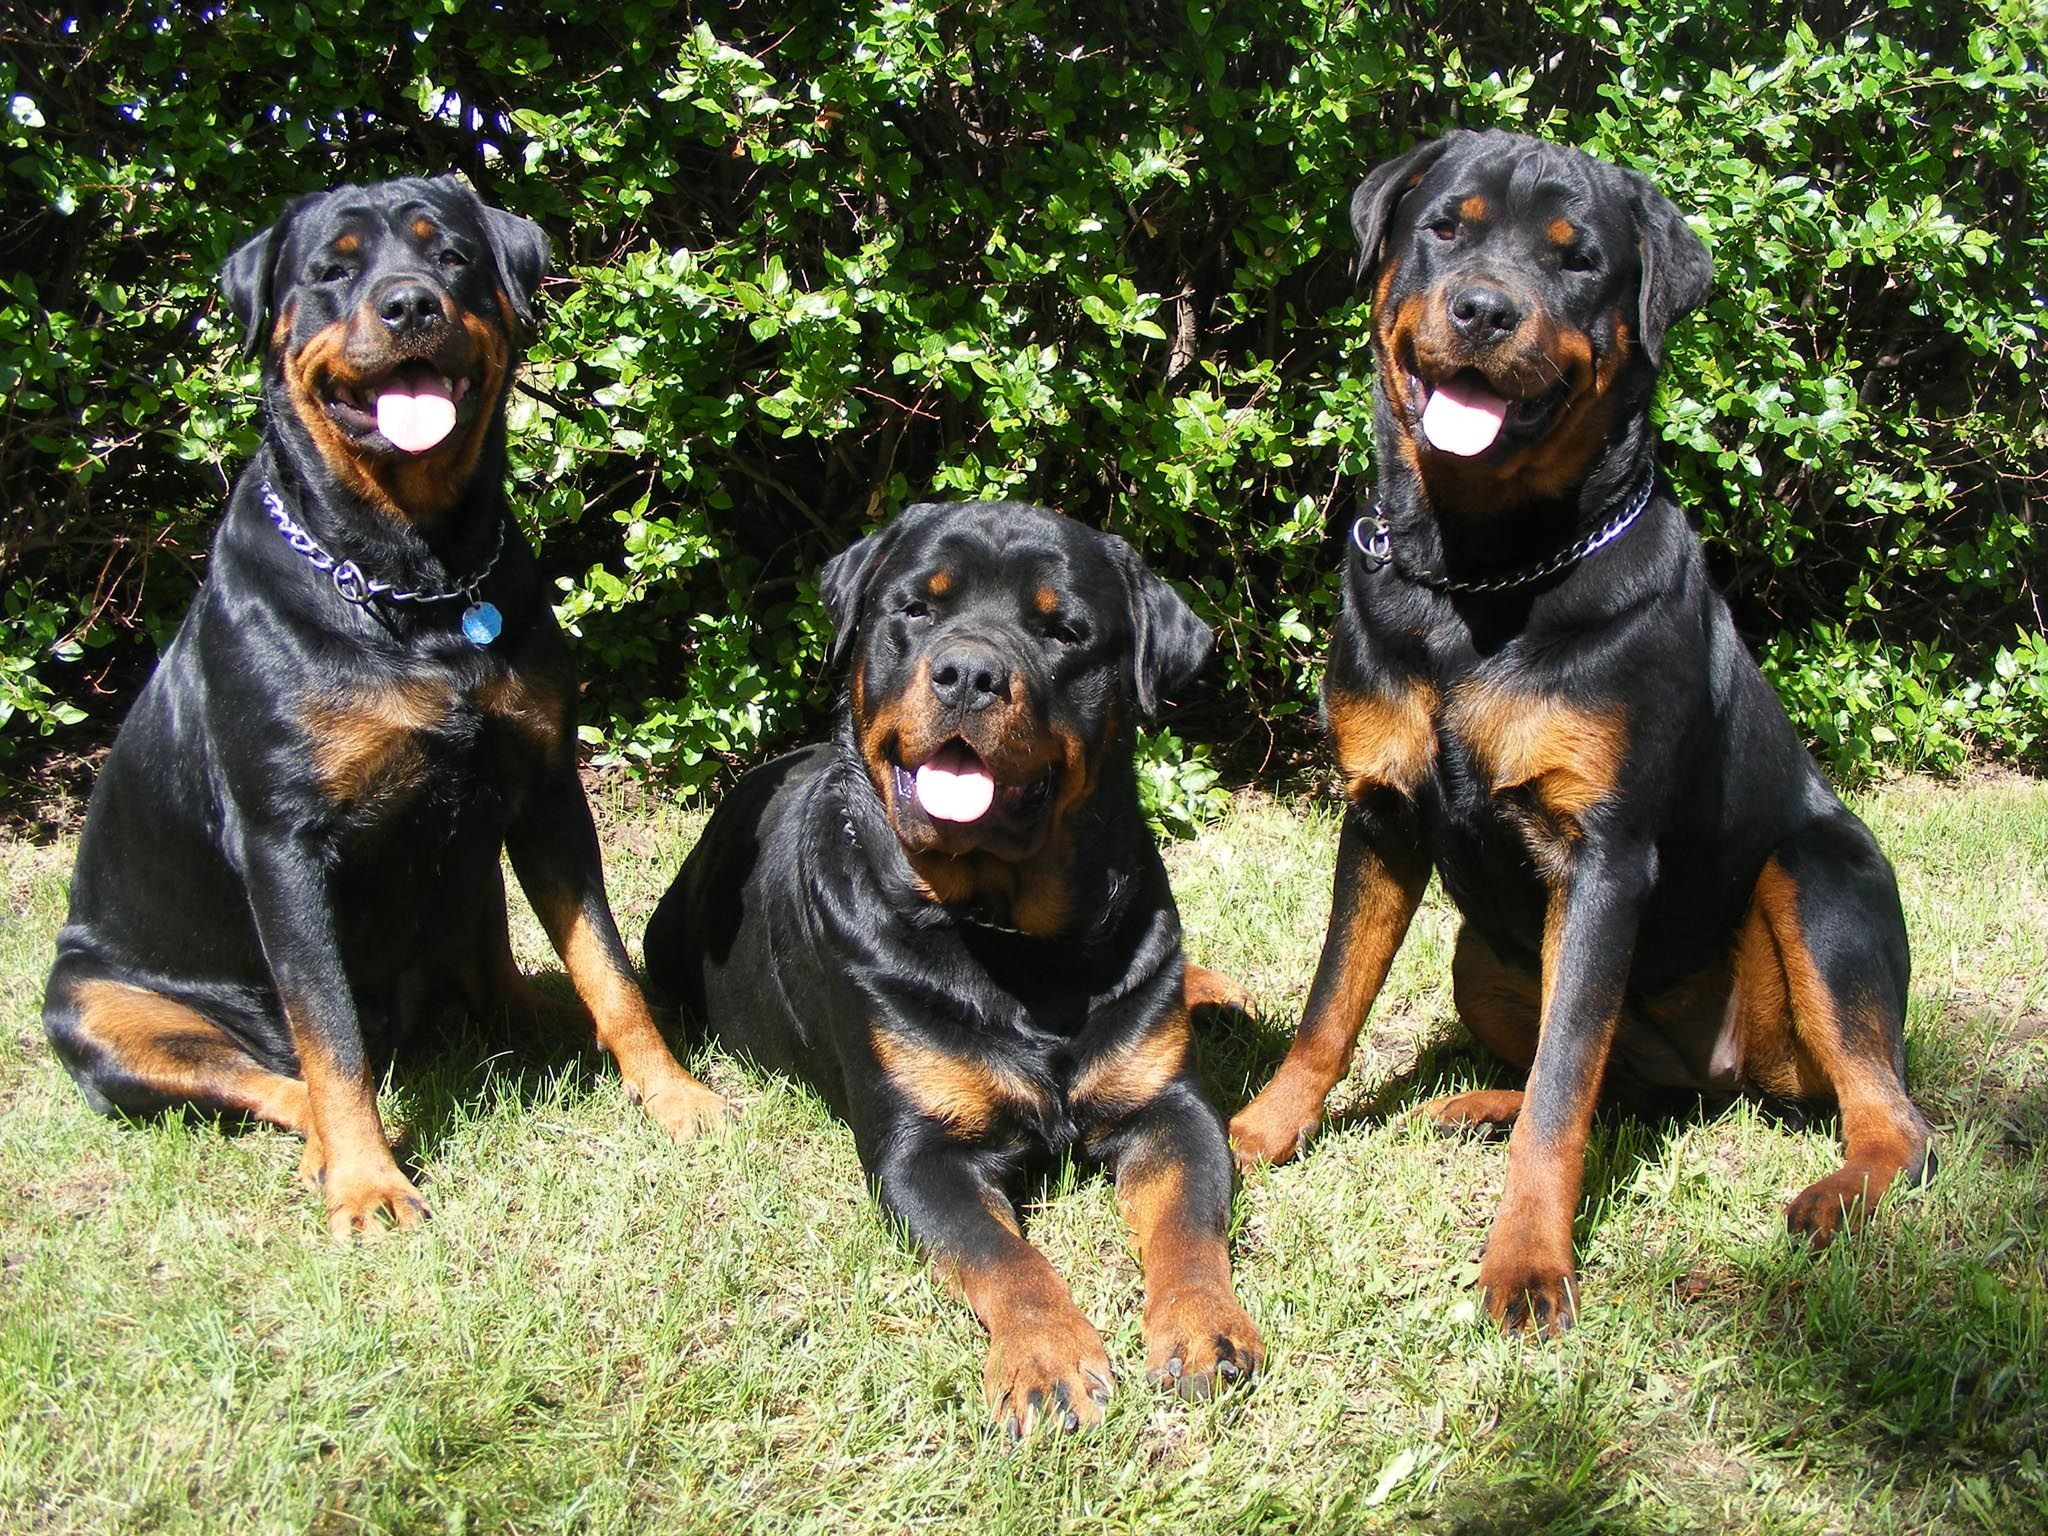 The Rottweiler Is Muscular And Massive Dog Breed Which Can Be A Daunting Beast Or Calm Canine Depending On Its P Rottweiler Dog Rottweiler Rottweiler Pictures